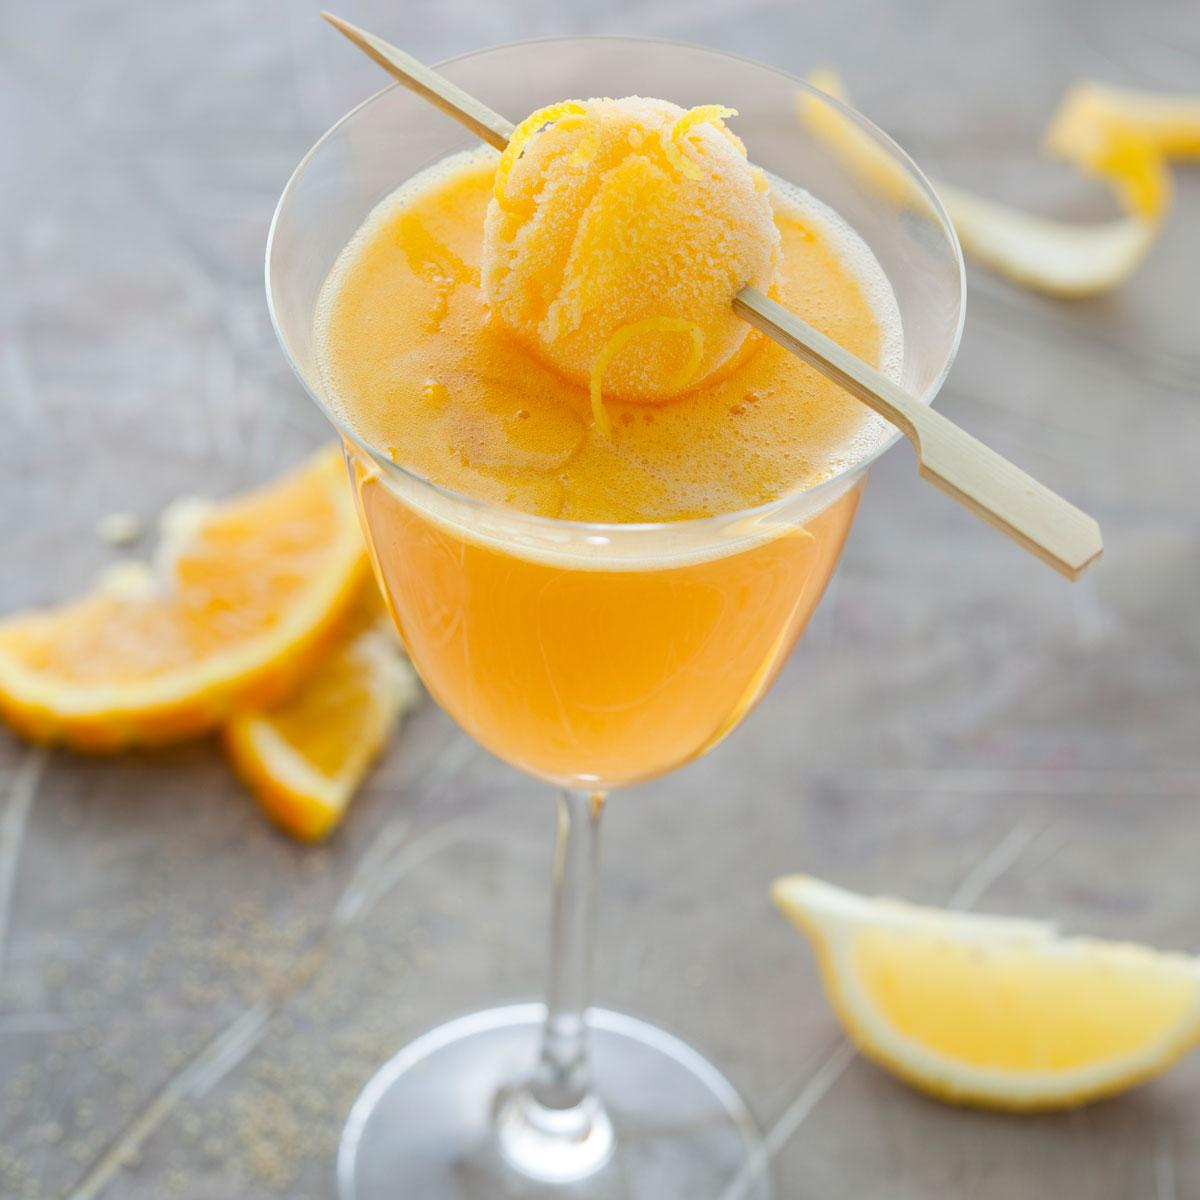 Recette cocktail cidre orange cuisine madame figaro - Cuisine orange ...